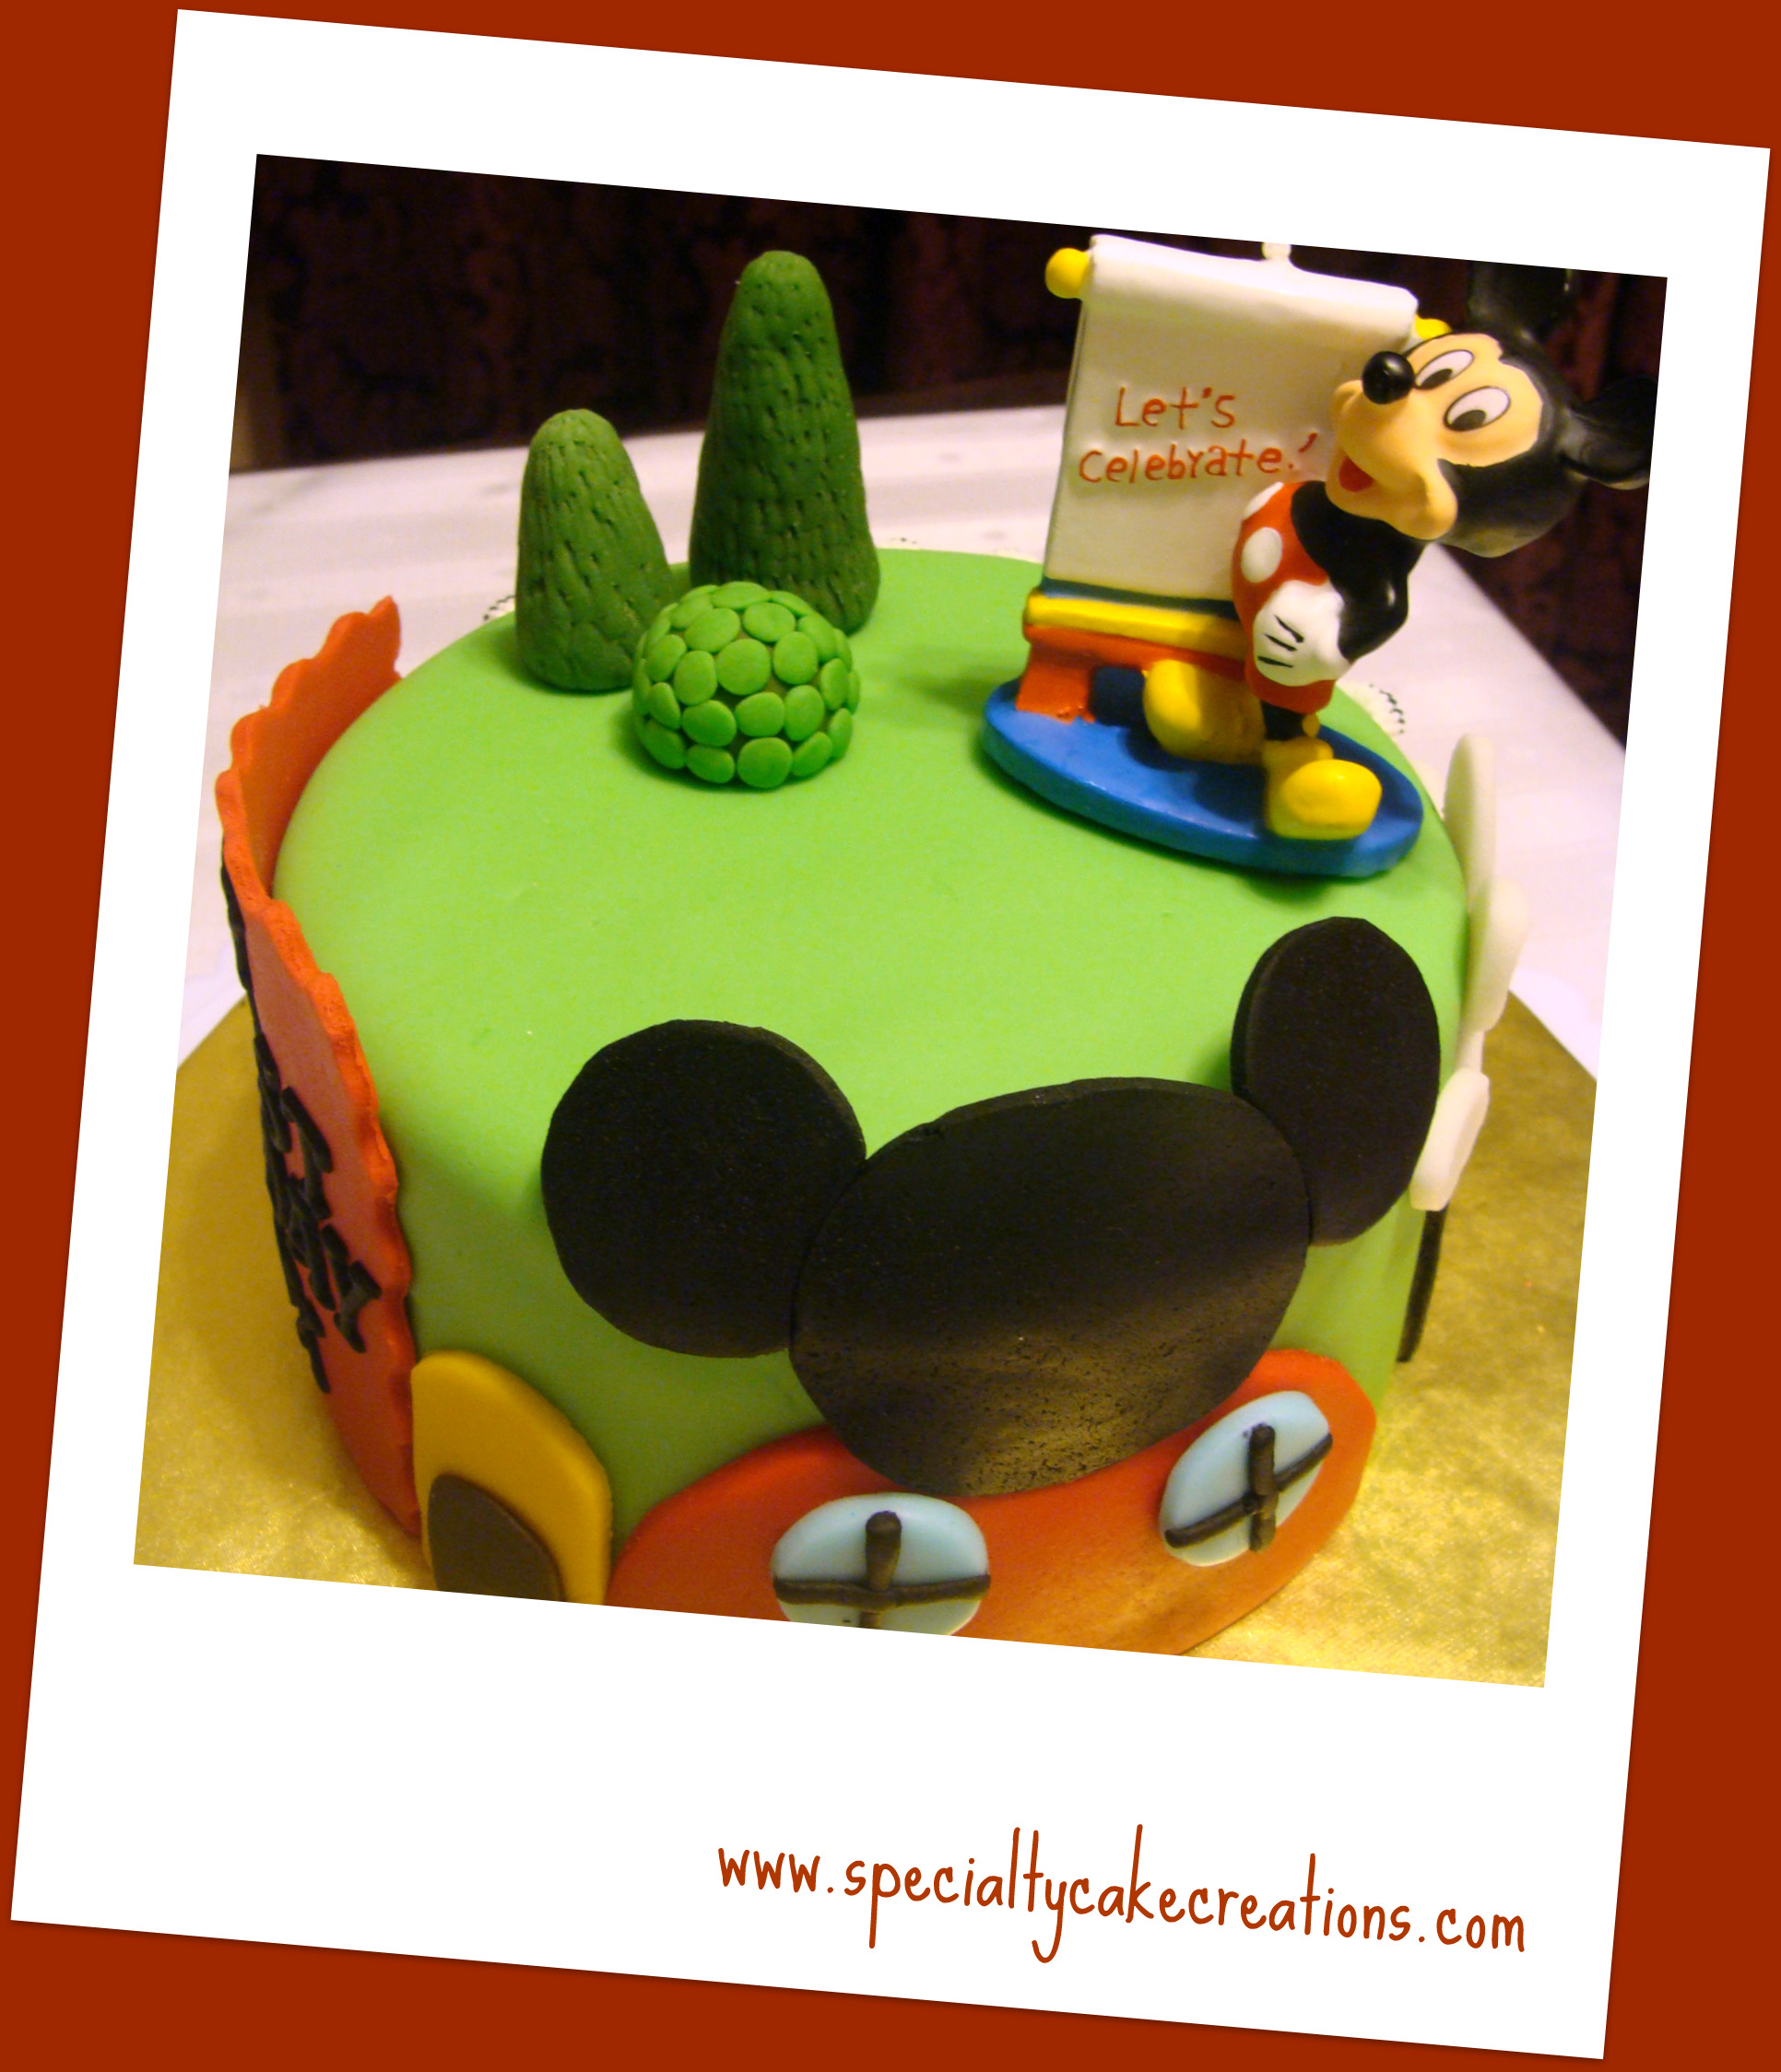 Birthday Cakes For Babies 1 Year Old For Boy Birthday Cakes For Boys